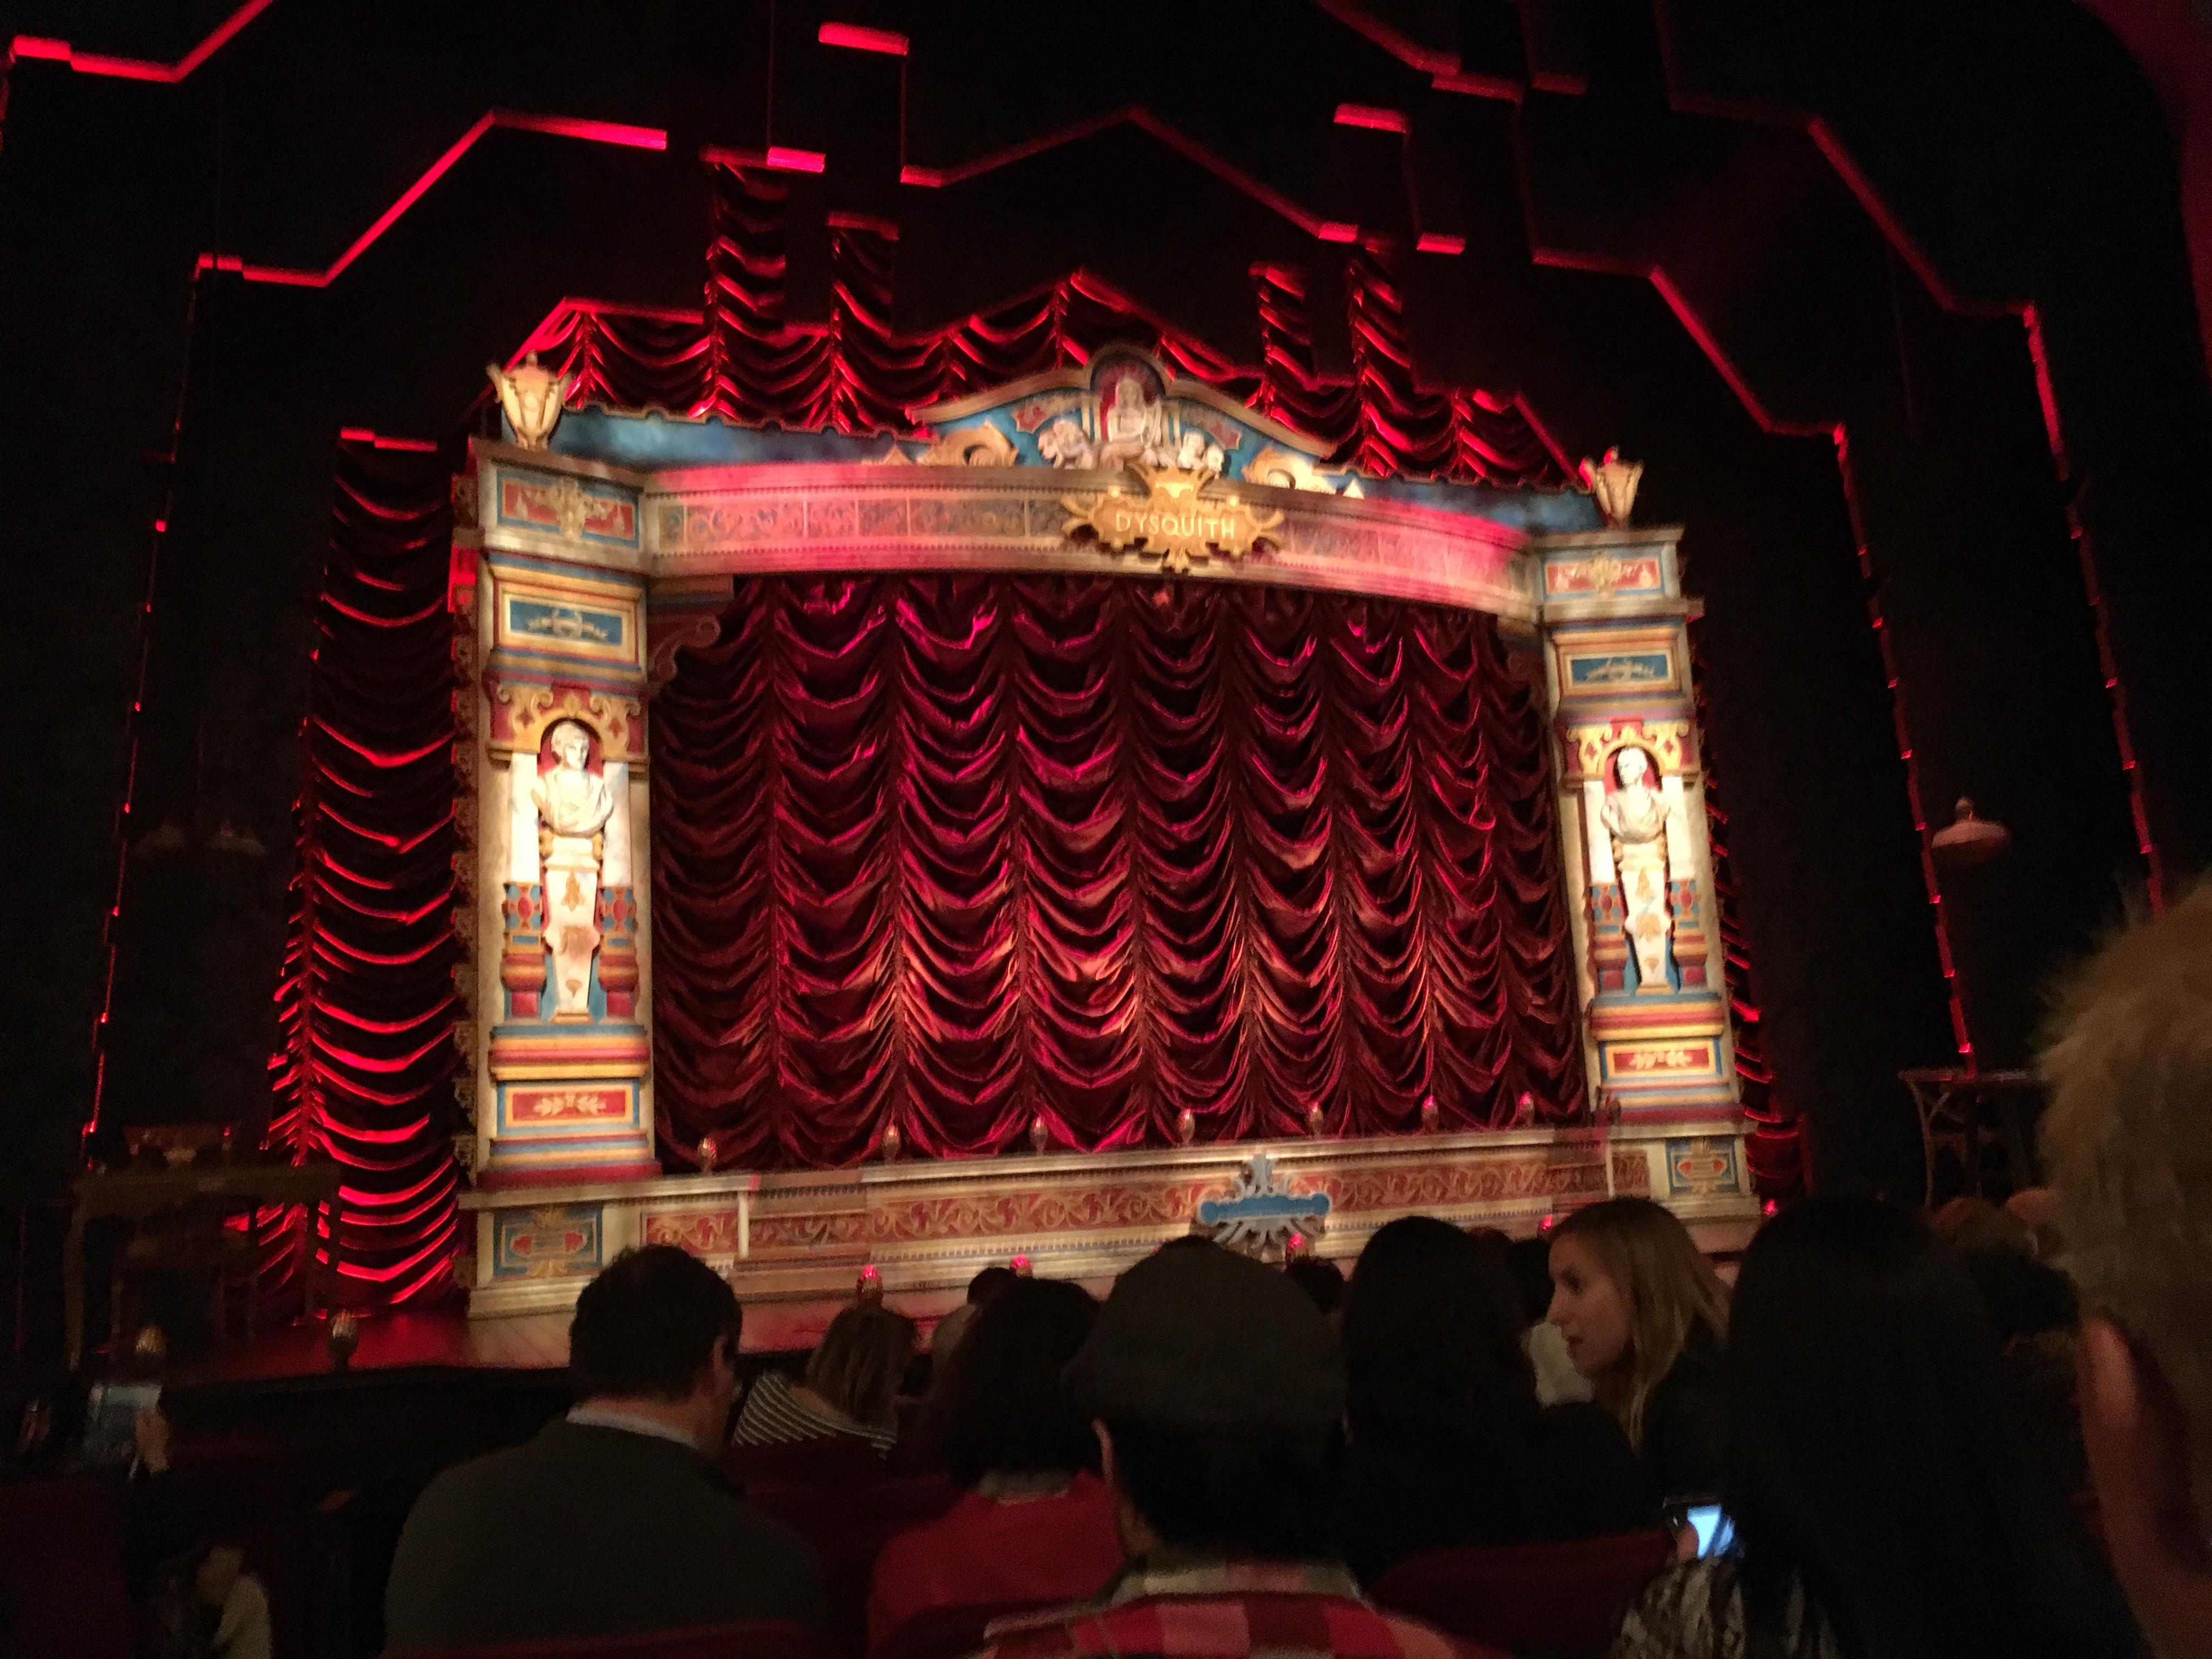 Walter Kerr Theatre Section Orchestra C Row K Seat 118